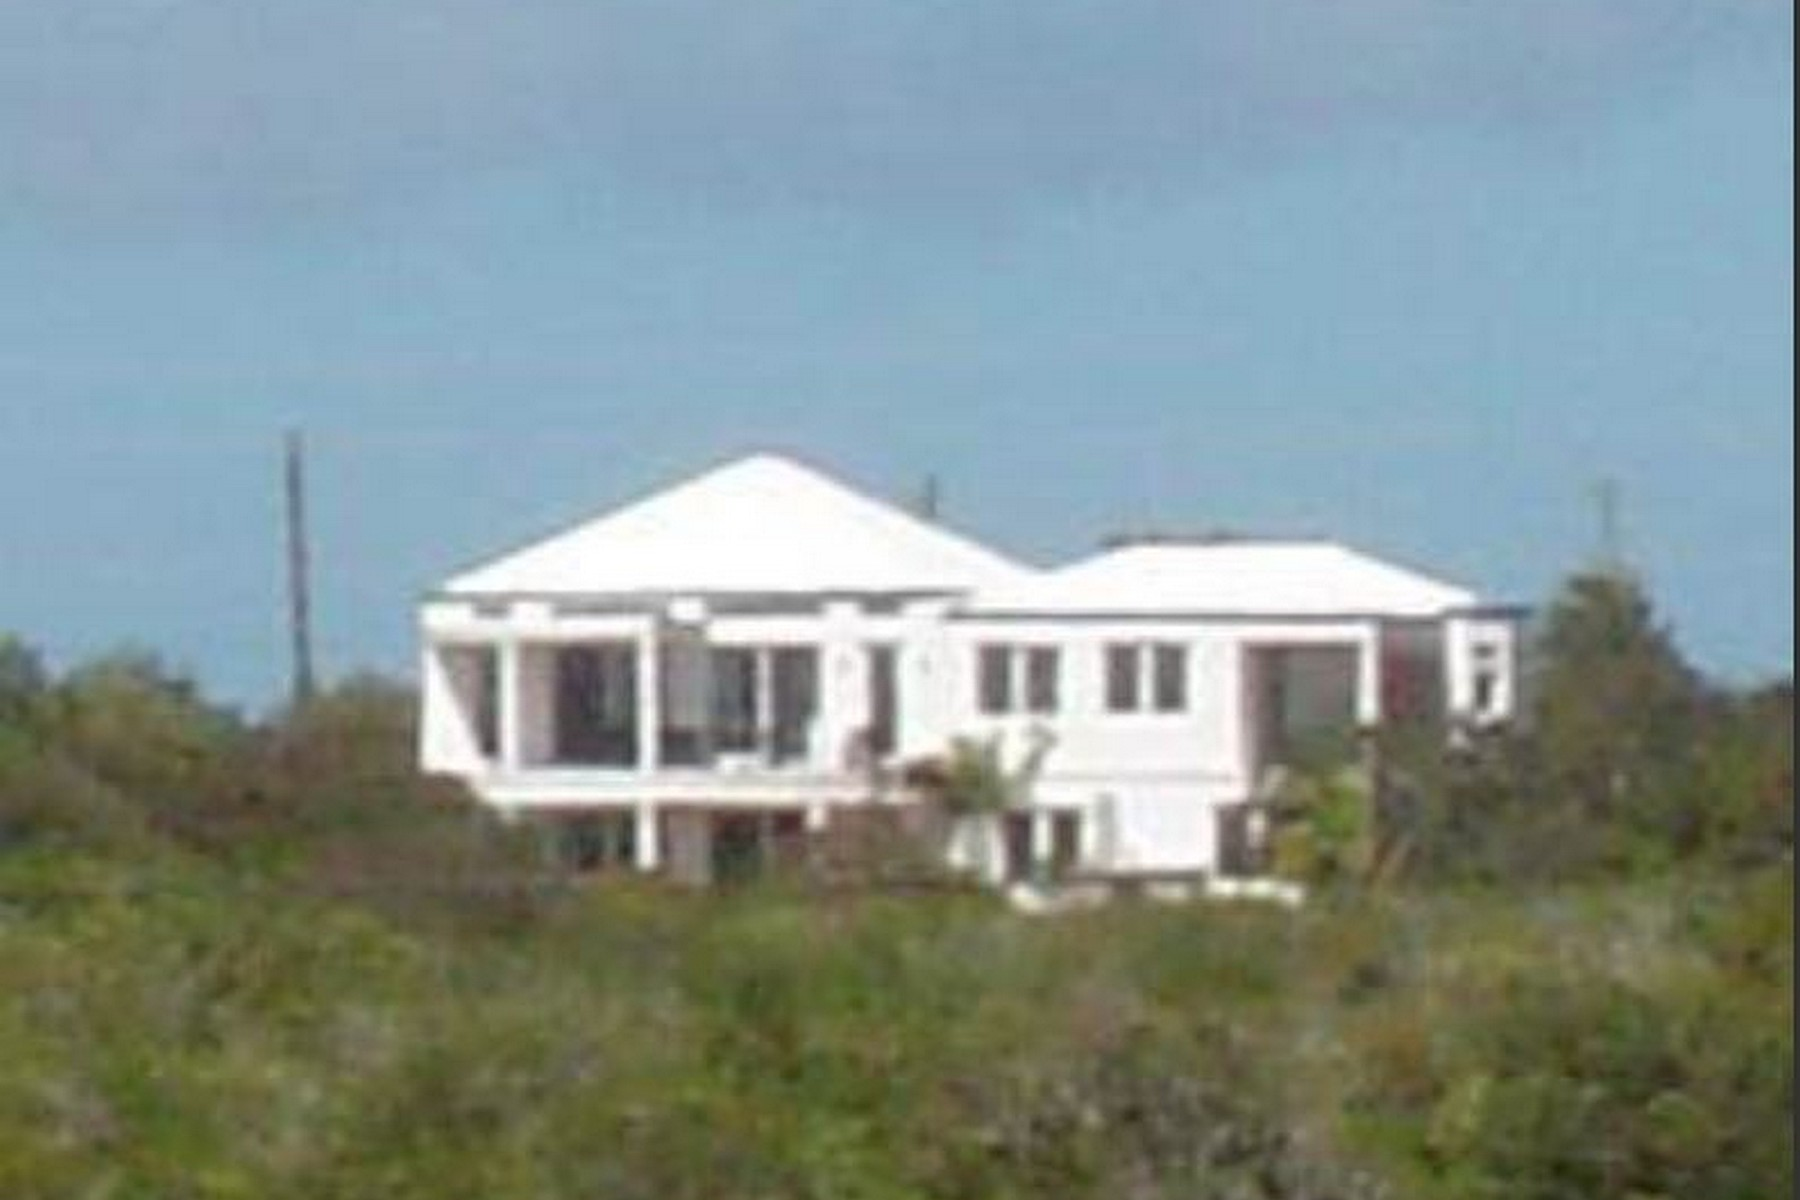 Maison unifamiliale pour l Vente à David's Delight West End Other Anguilla, AI 2640 Anguilla